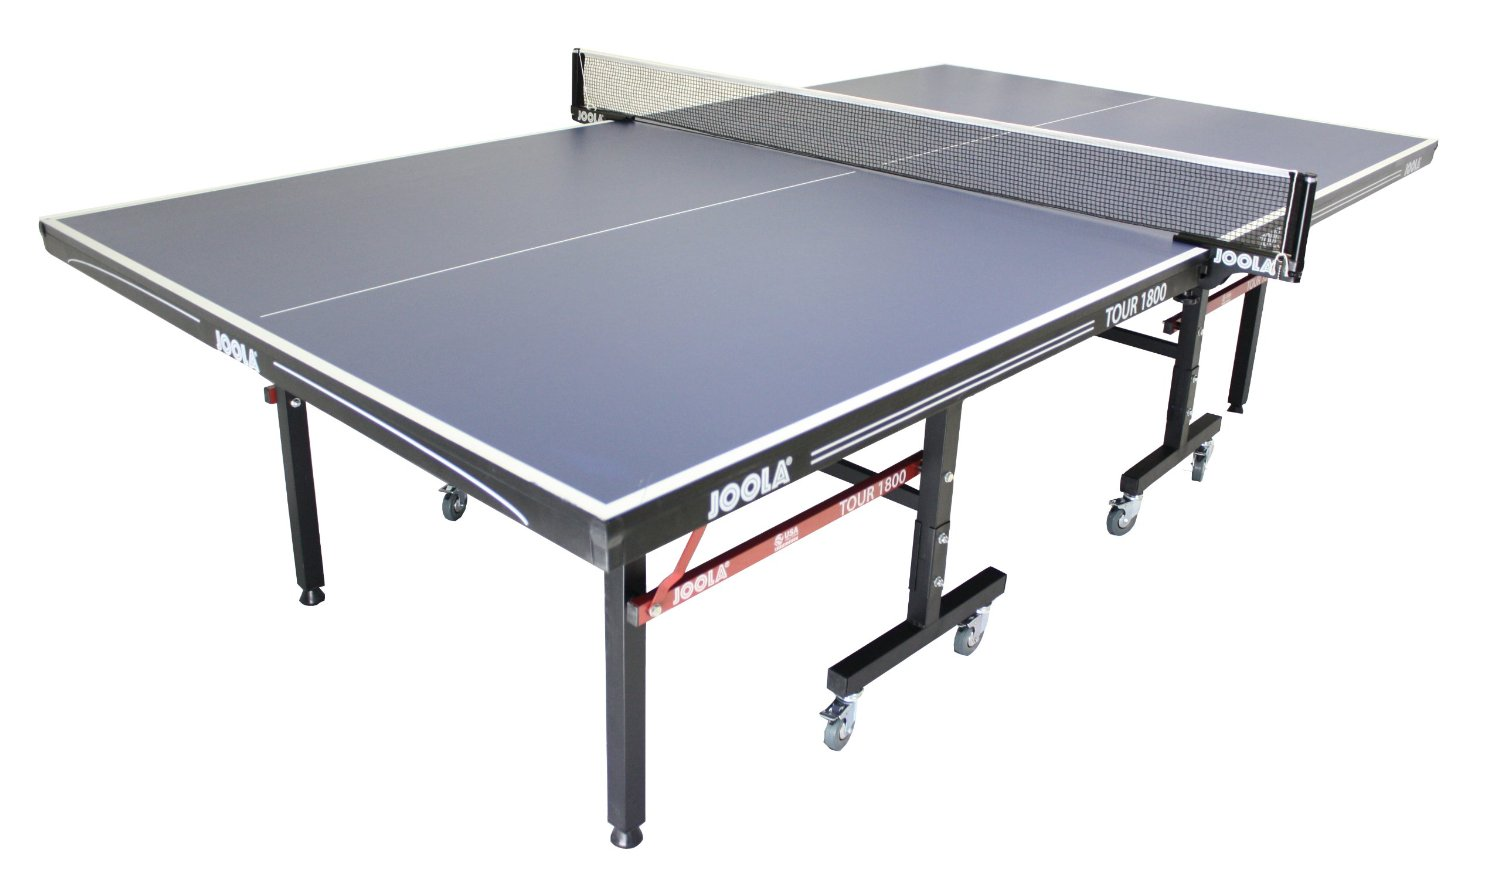 Joola tour 1800 best outdoor ping pong tables for Table ping pong